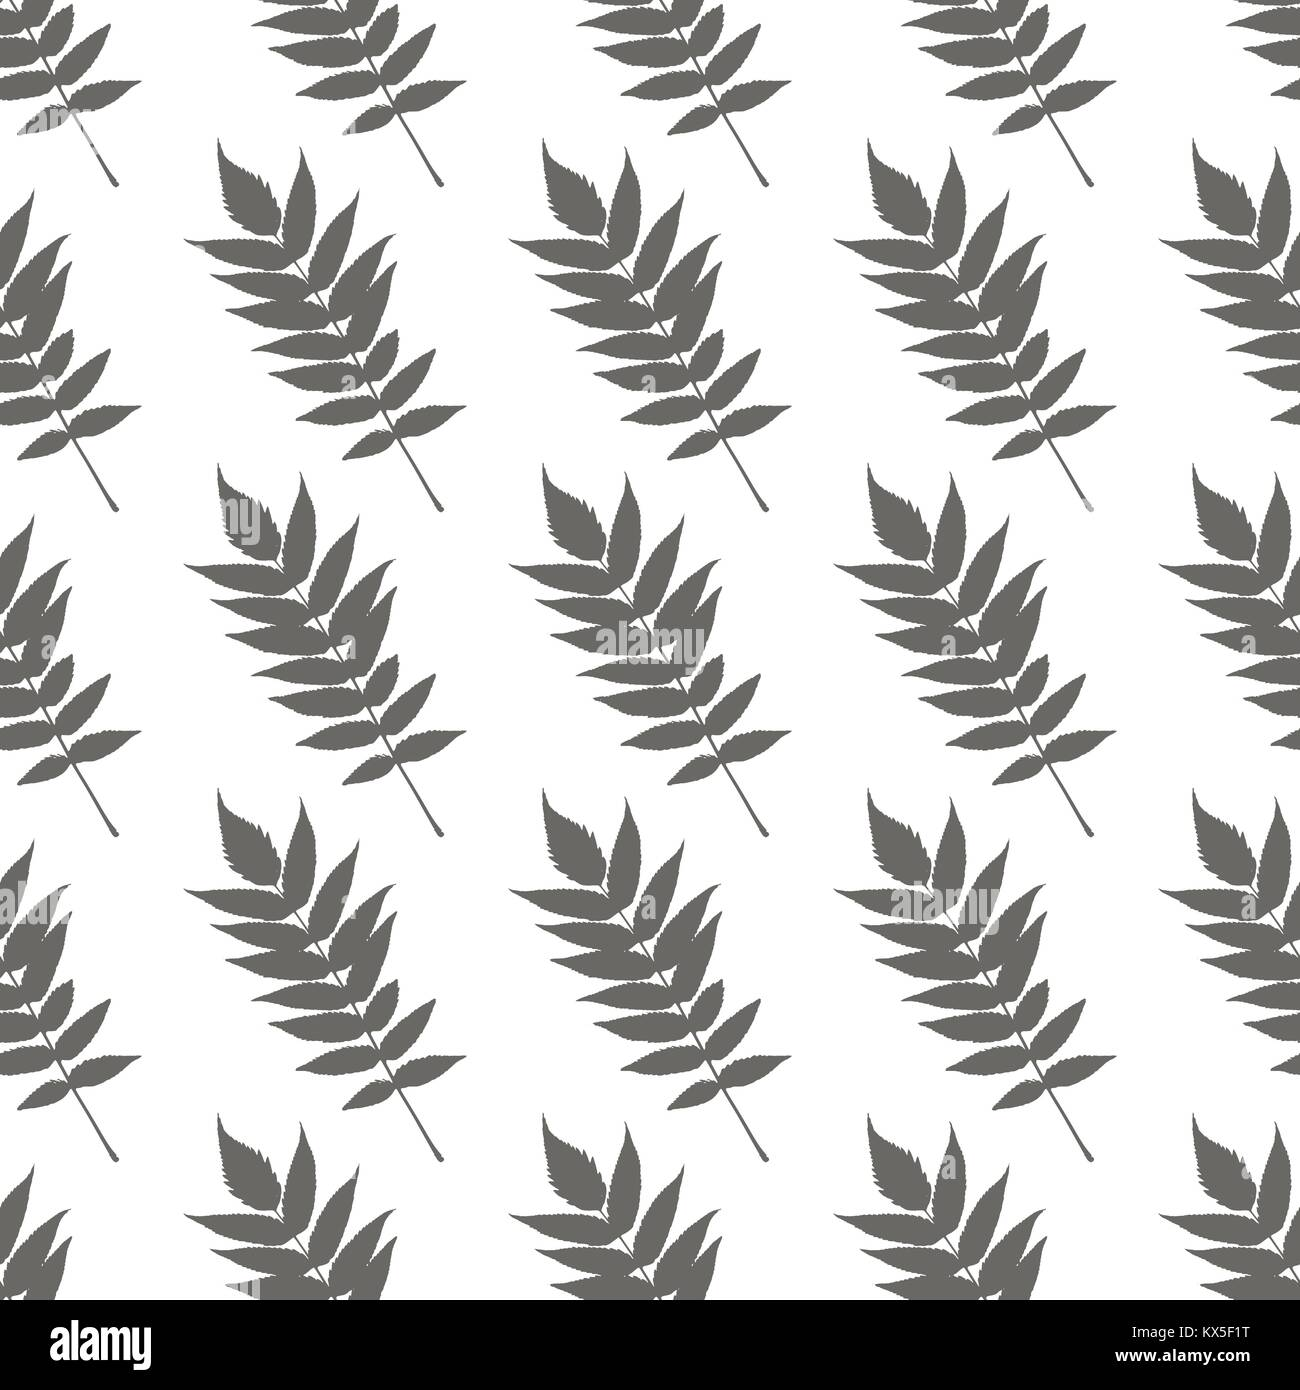 Seamless vector pattern of twig with leaves isolated on white background. - Stock Vector